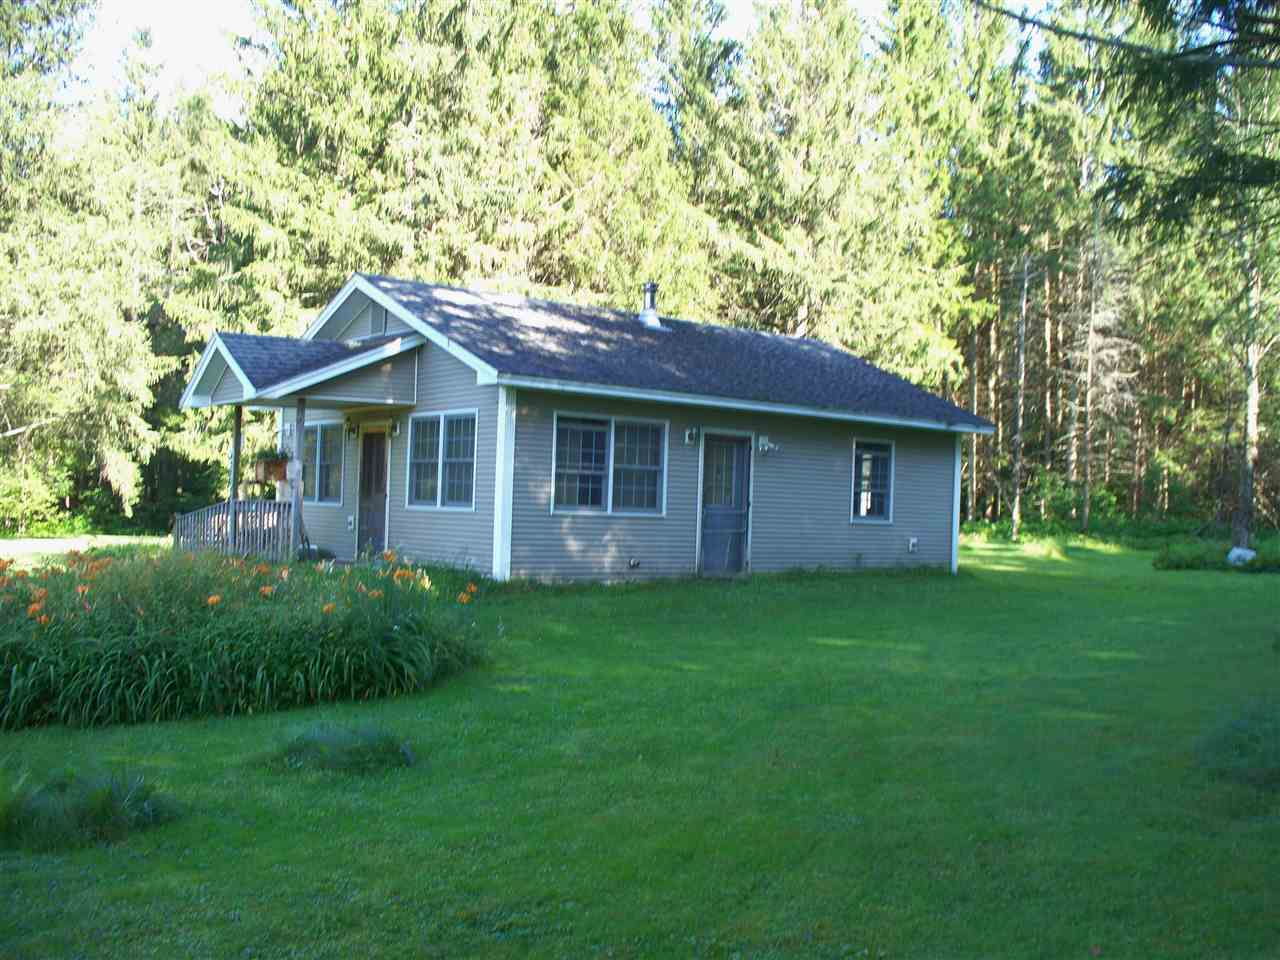 Homes for Sale Under $250,000 in Vermont | Affordable Homes